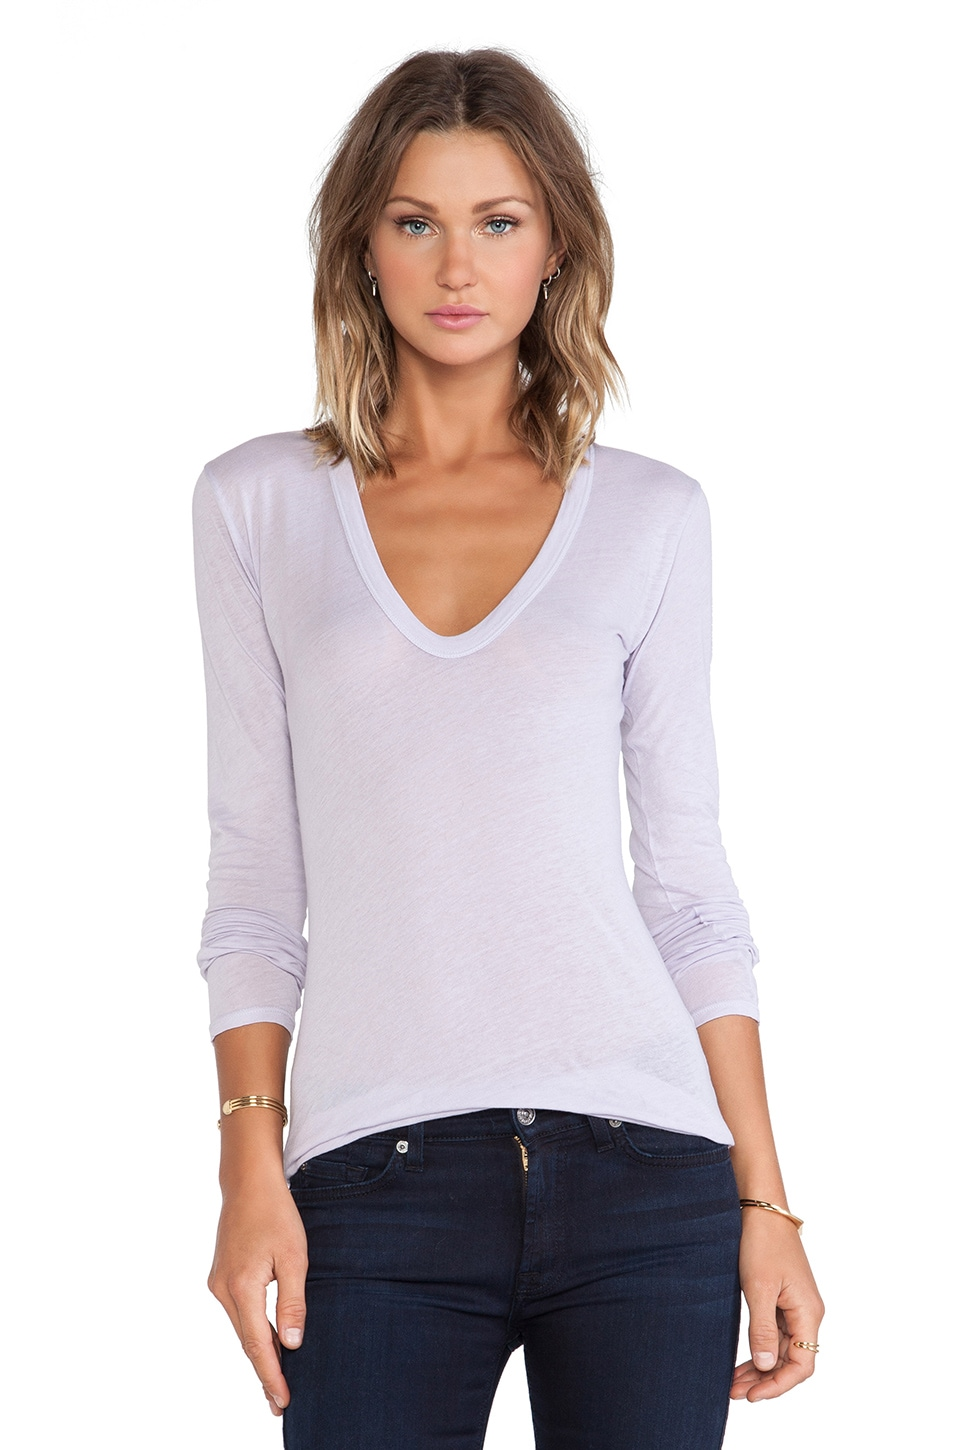 Enza Costa Tissue Jersey Bold Long Sleeve U Neck in Iris